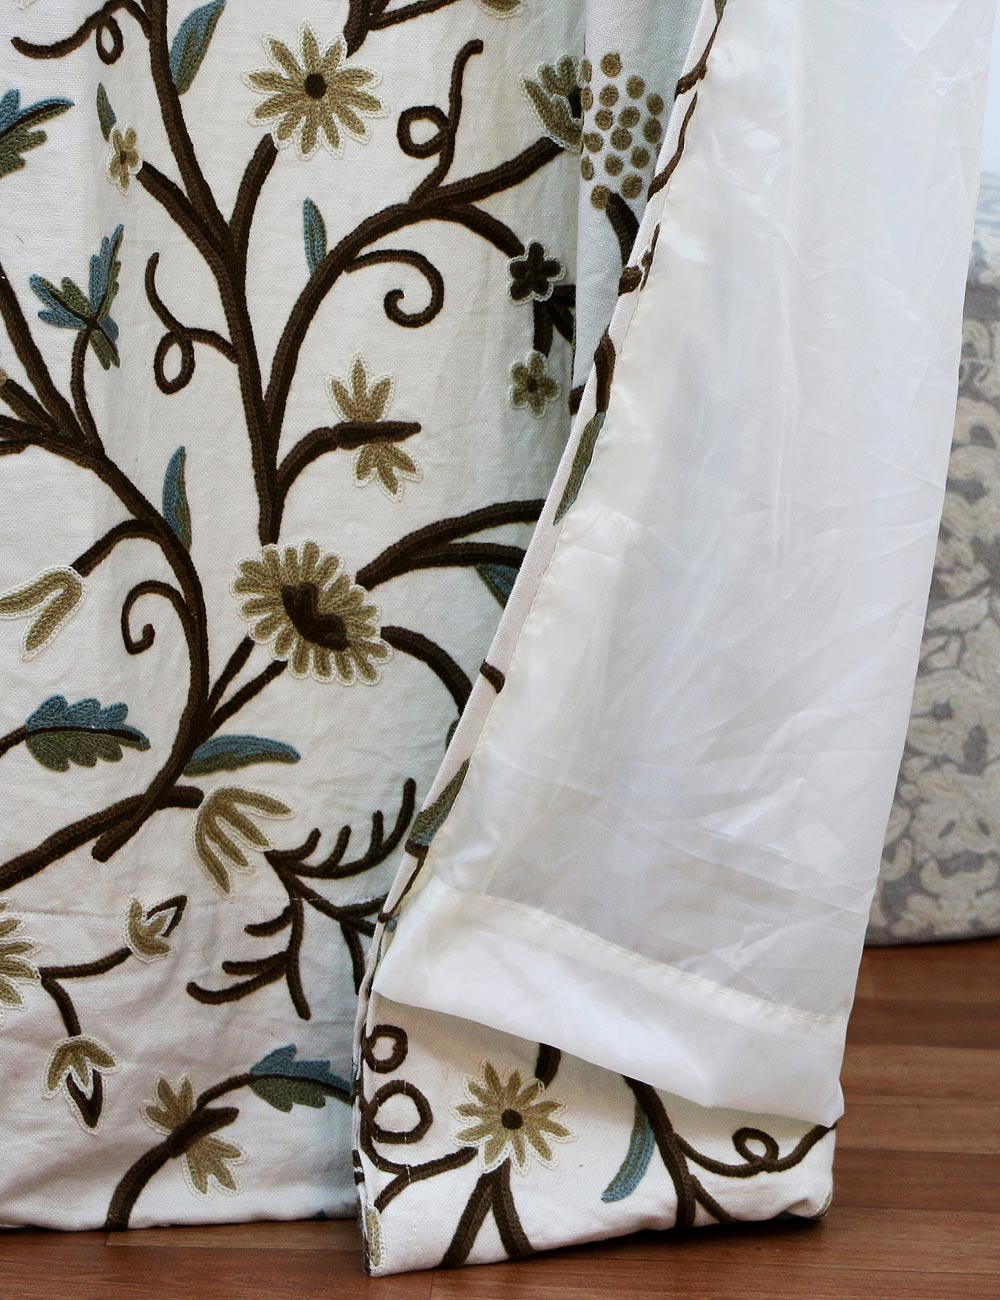 Grapes handmade crewel curtain panel wool embroidered